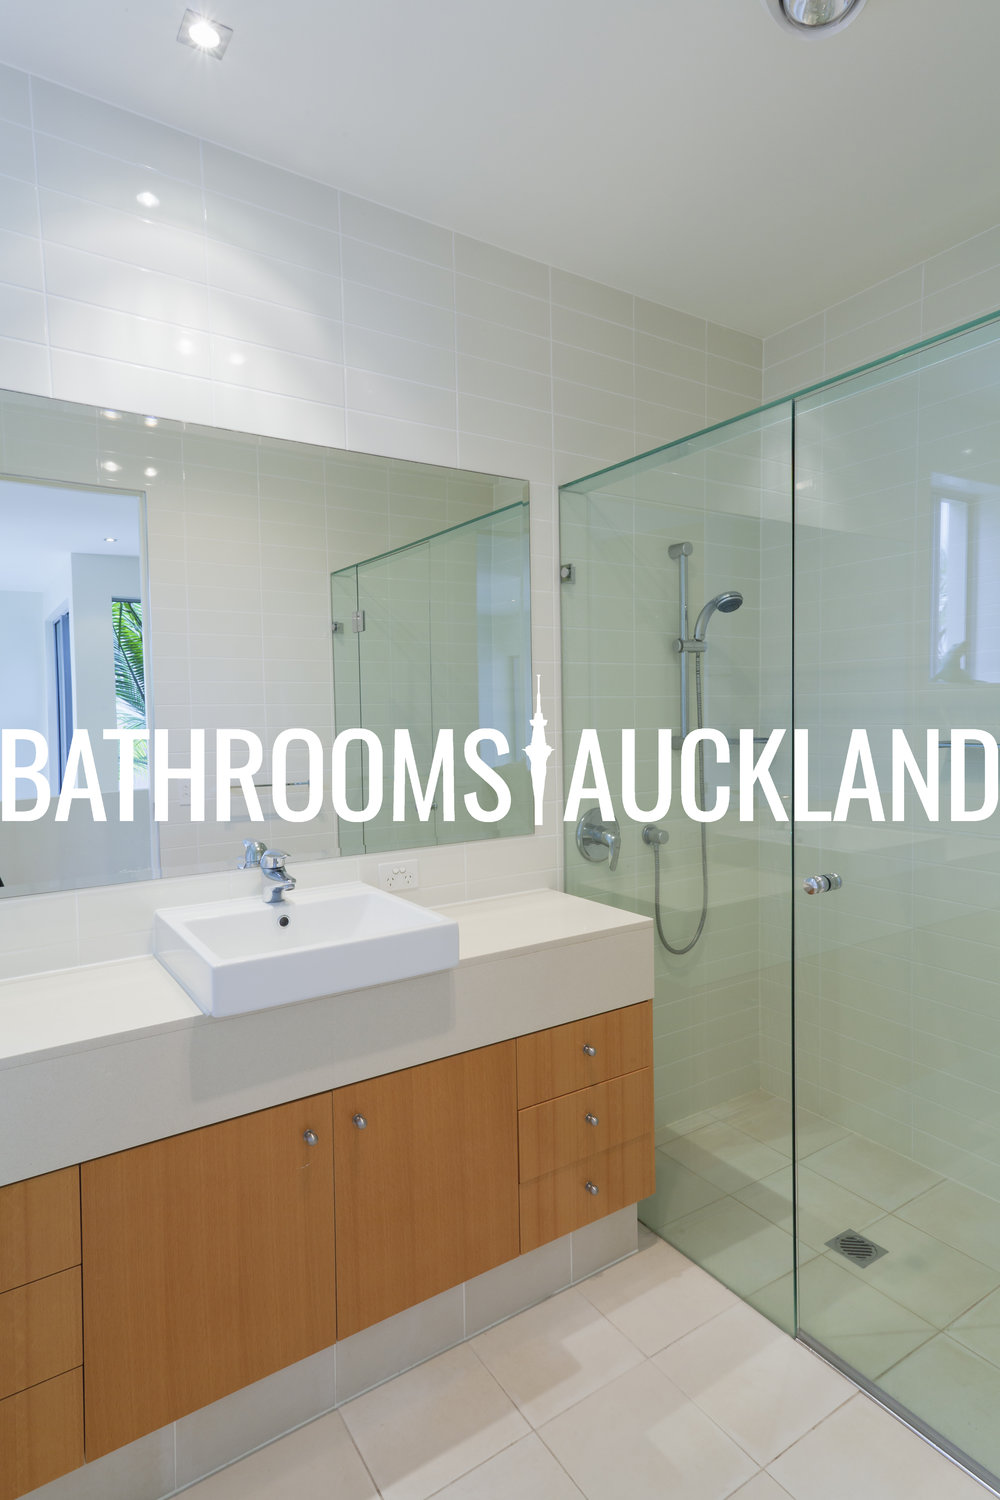 Bathrooms Auckland Renovation_Bathrooms In Auckland_Bathroom Renovation_Bathrooms Renovation_Bathrooms Auckland Renovation .126.jpg